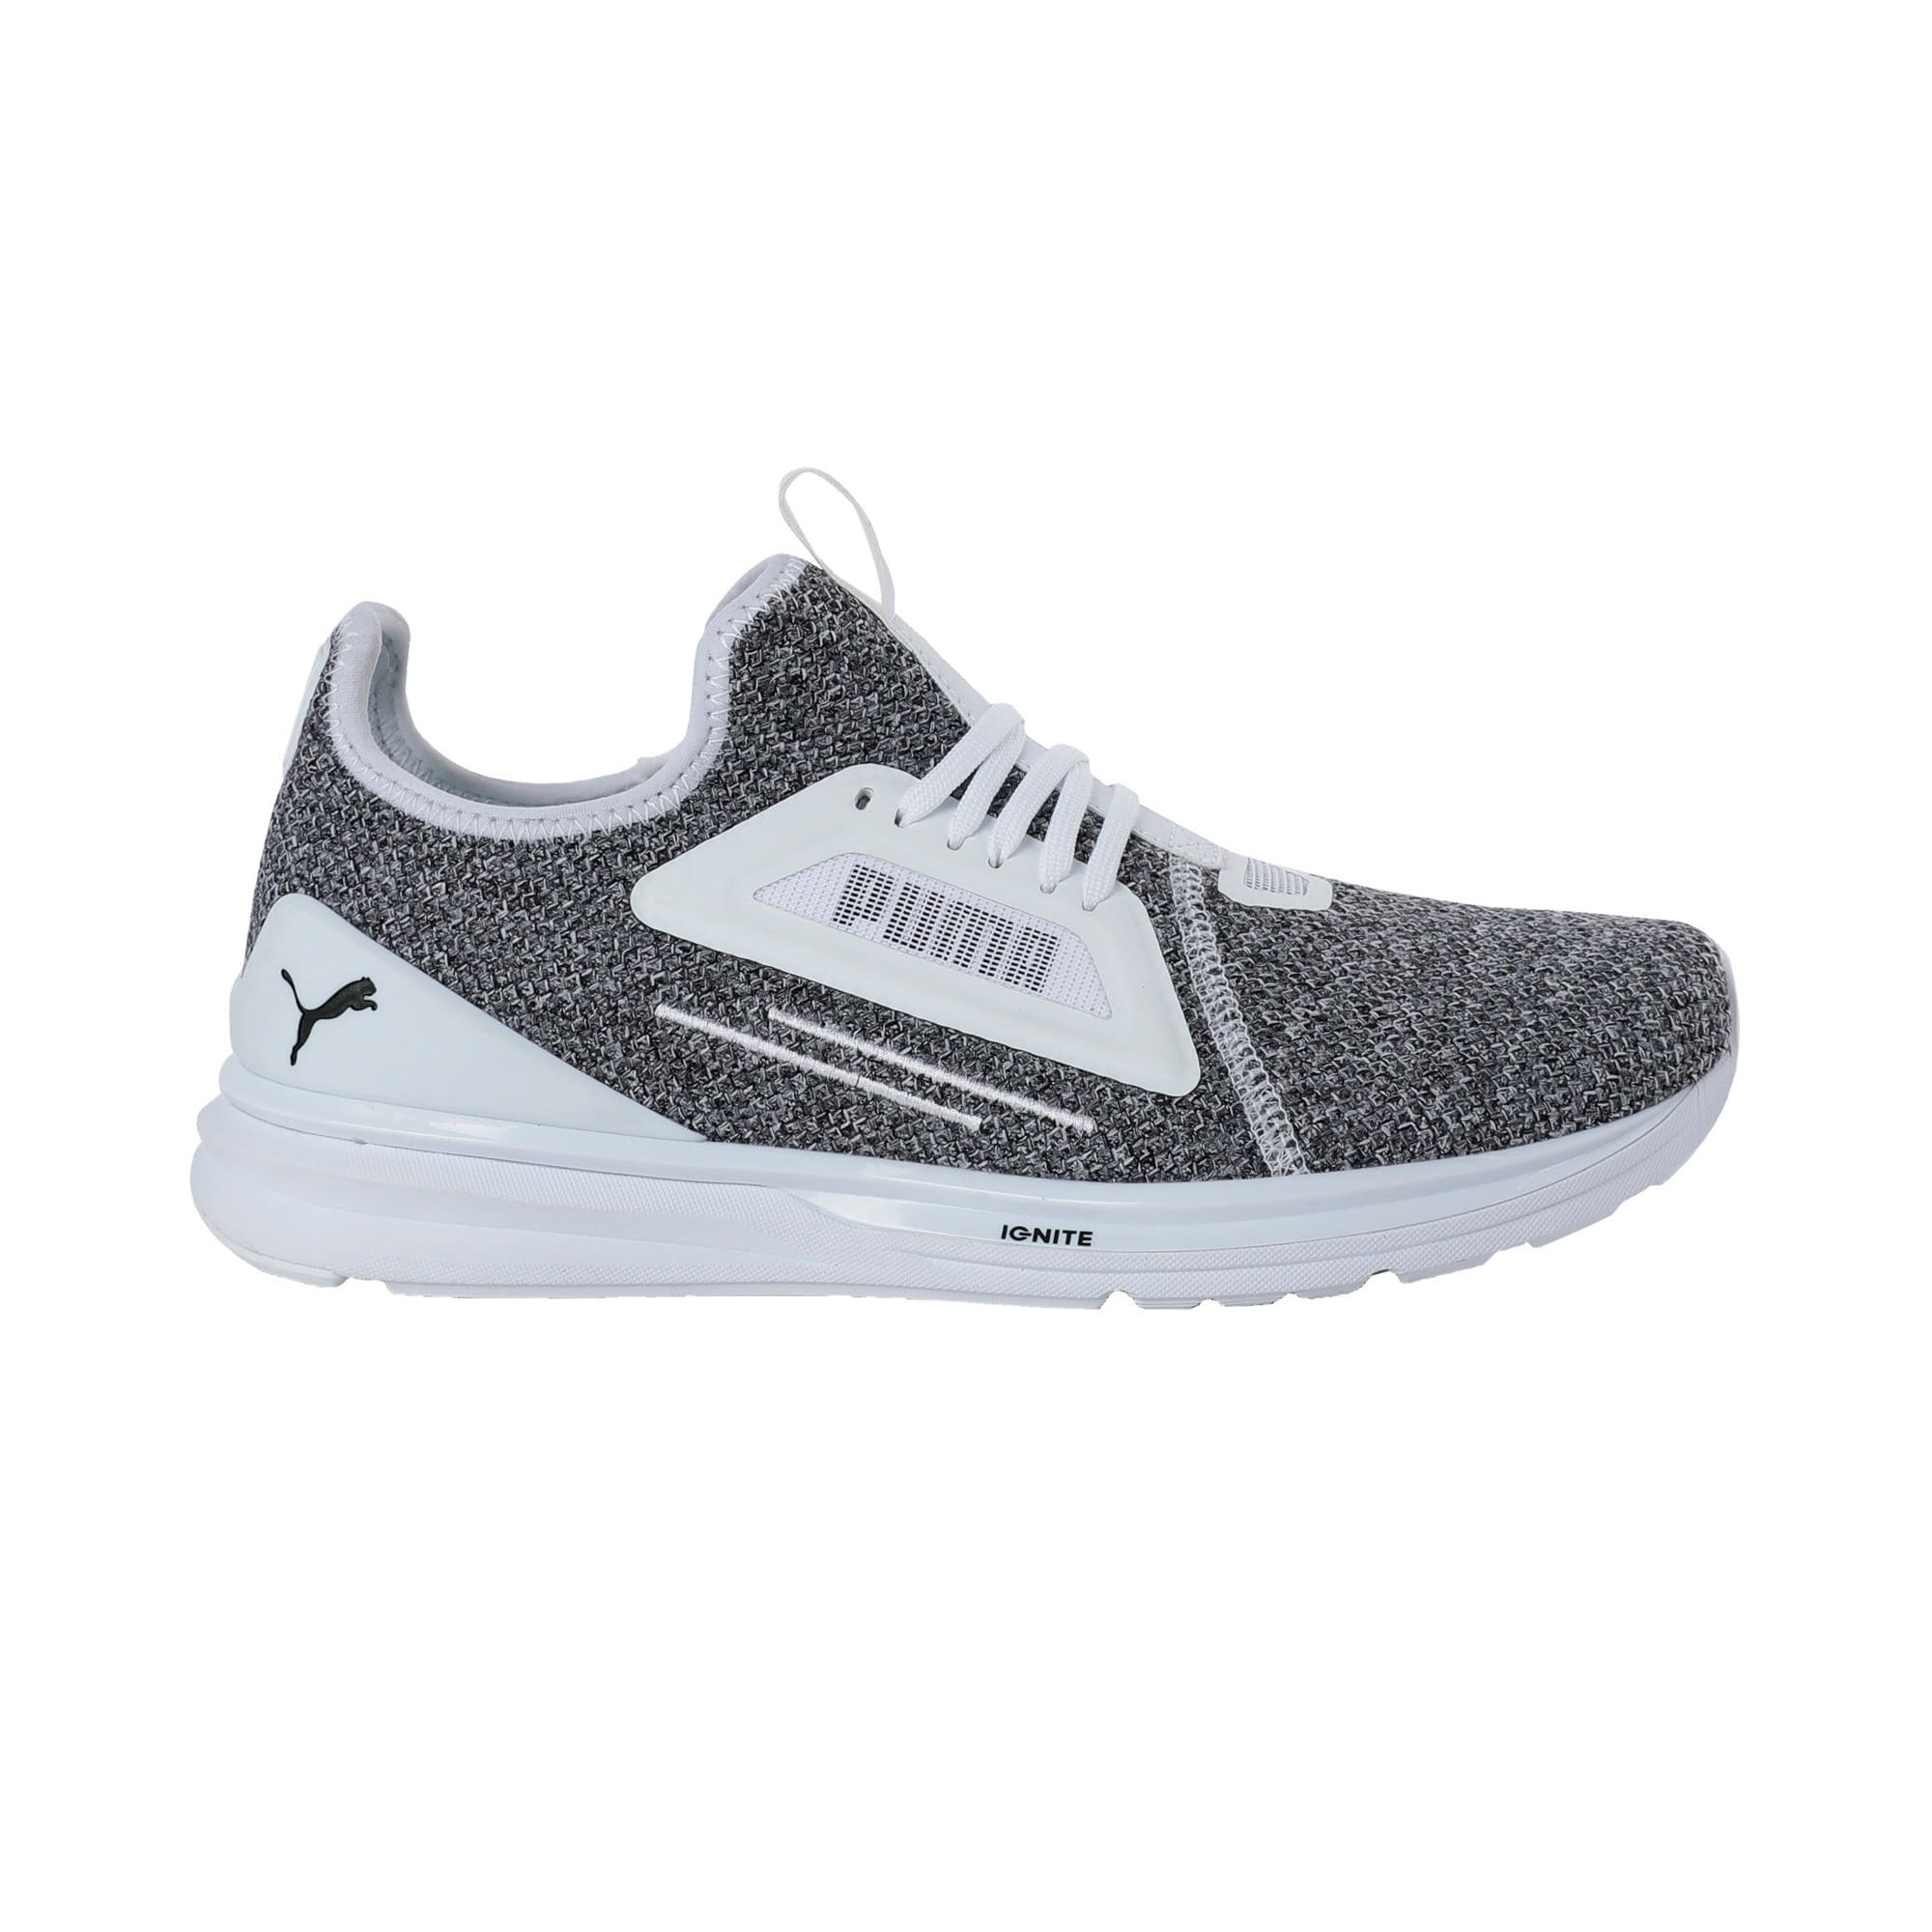 Thumbnail 5 of IGNITE Limitless Lean, Puma White-Puma Black, medium-IND